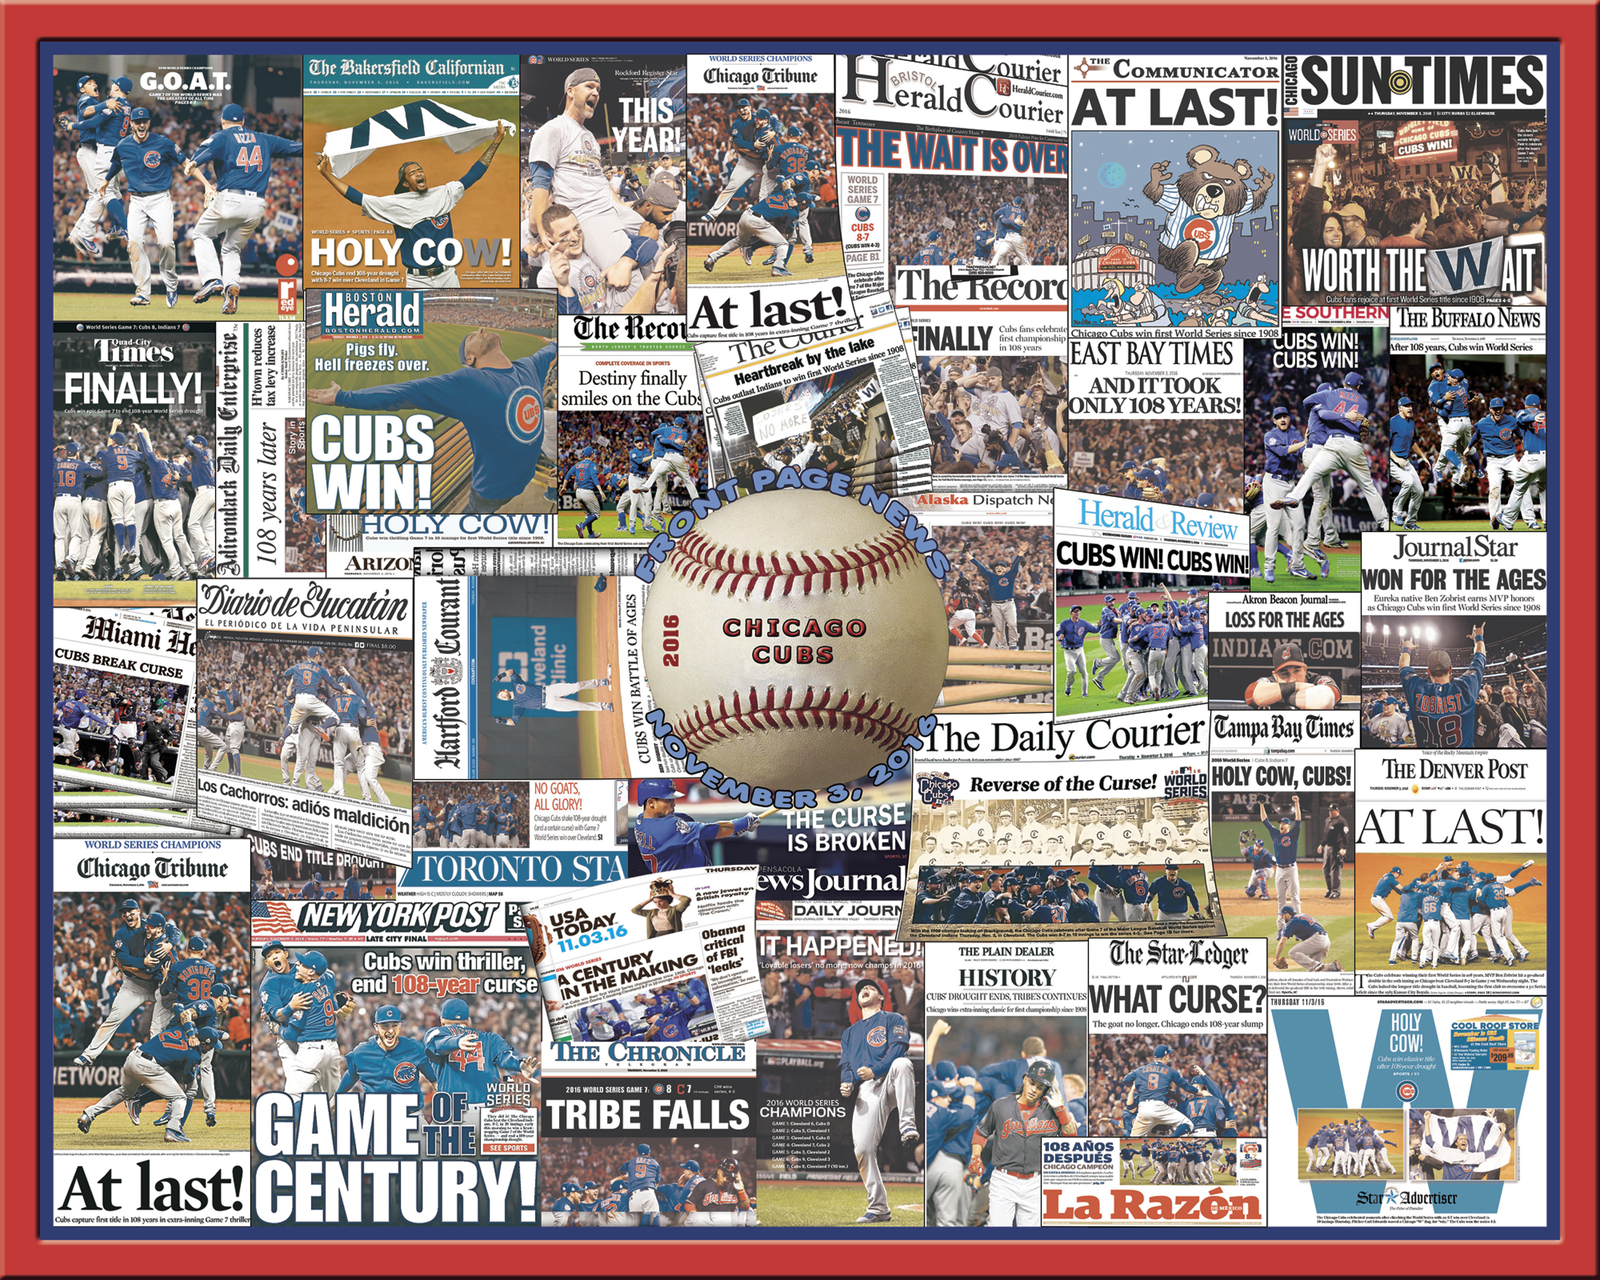 Chicago Cubs 2016 World Series Newspaper Collage Print Art-Front Page Headlines